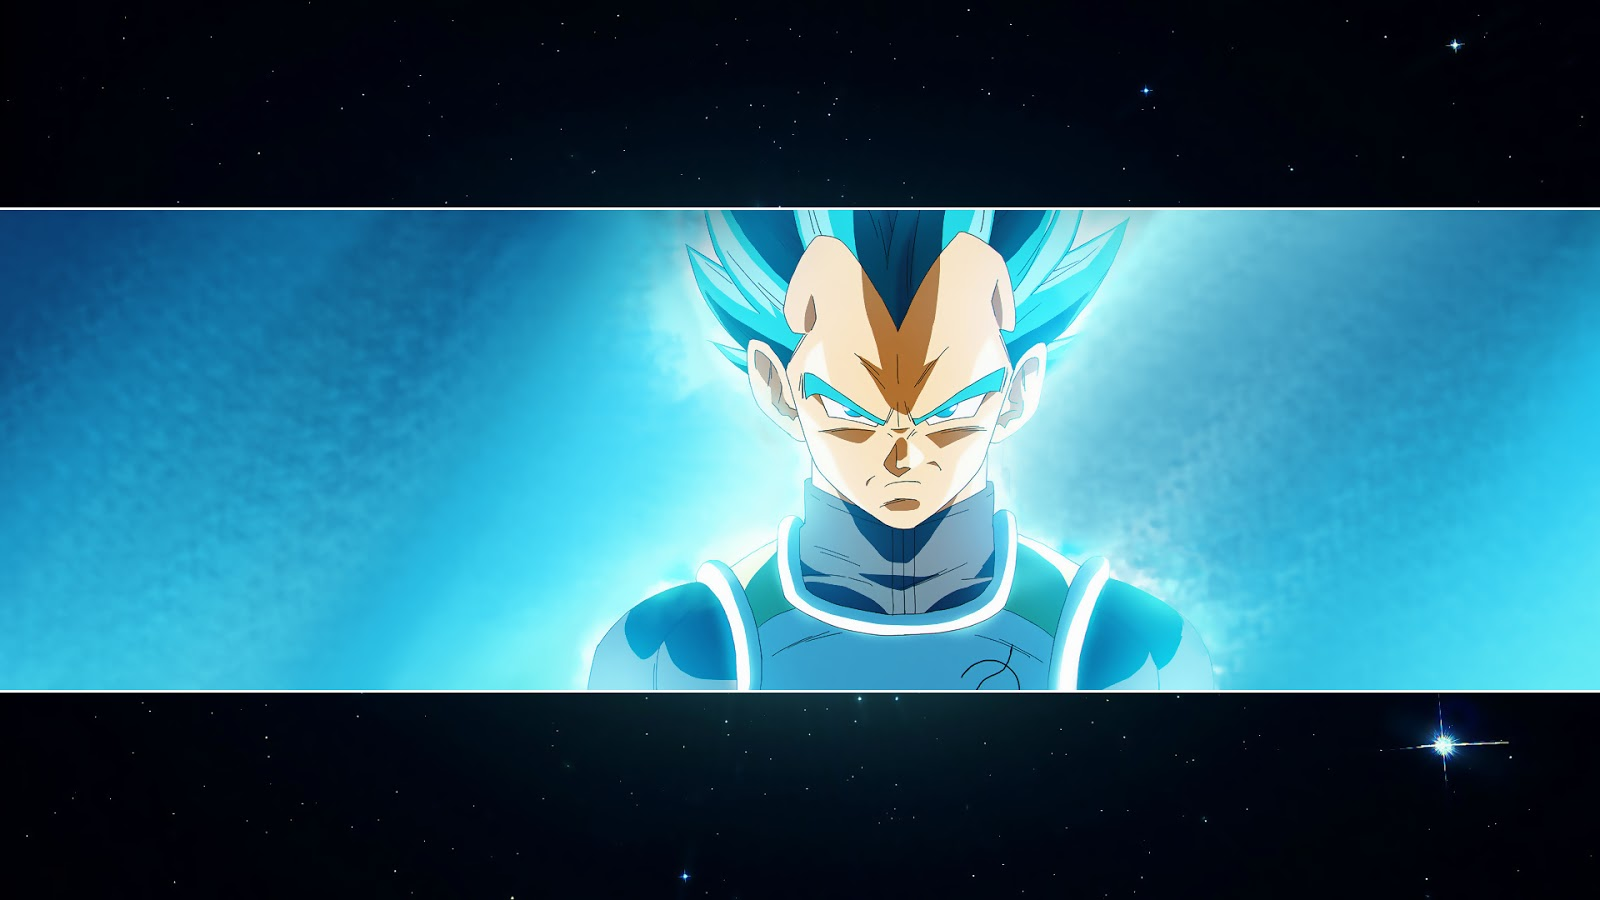 50 Hd Dragon Ball Z Wallpapers 1920x1080 2020 We 7